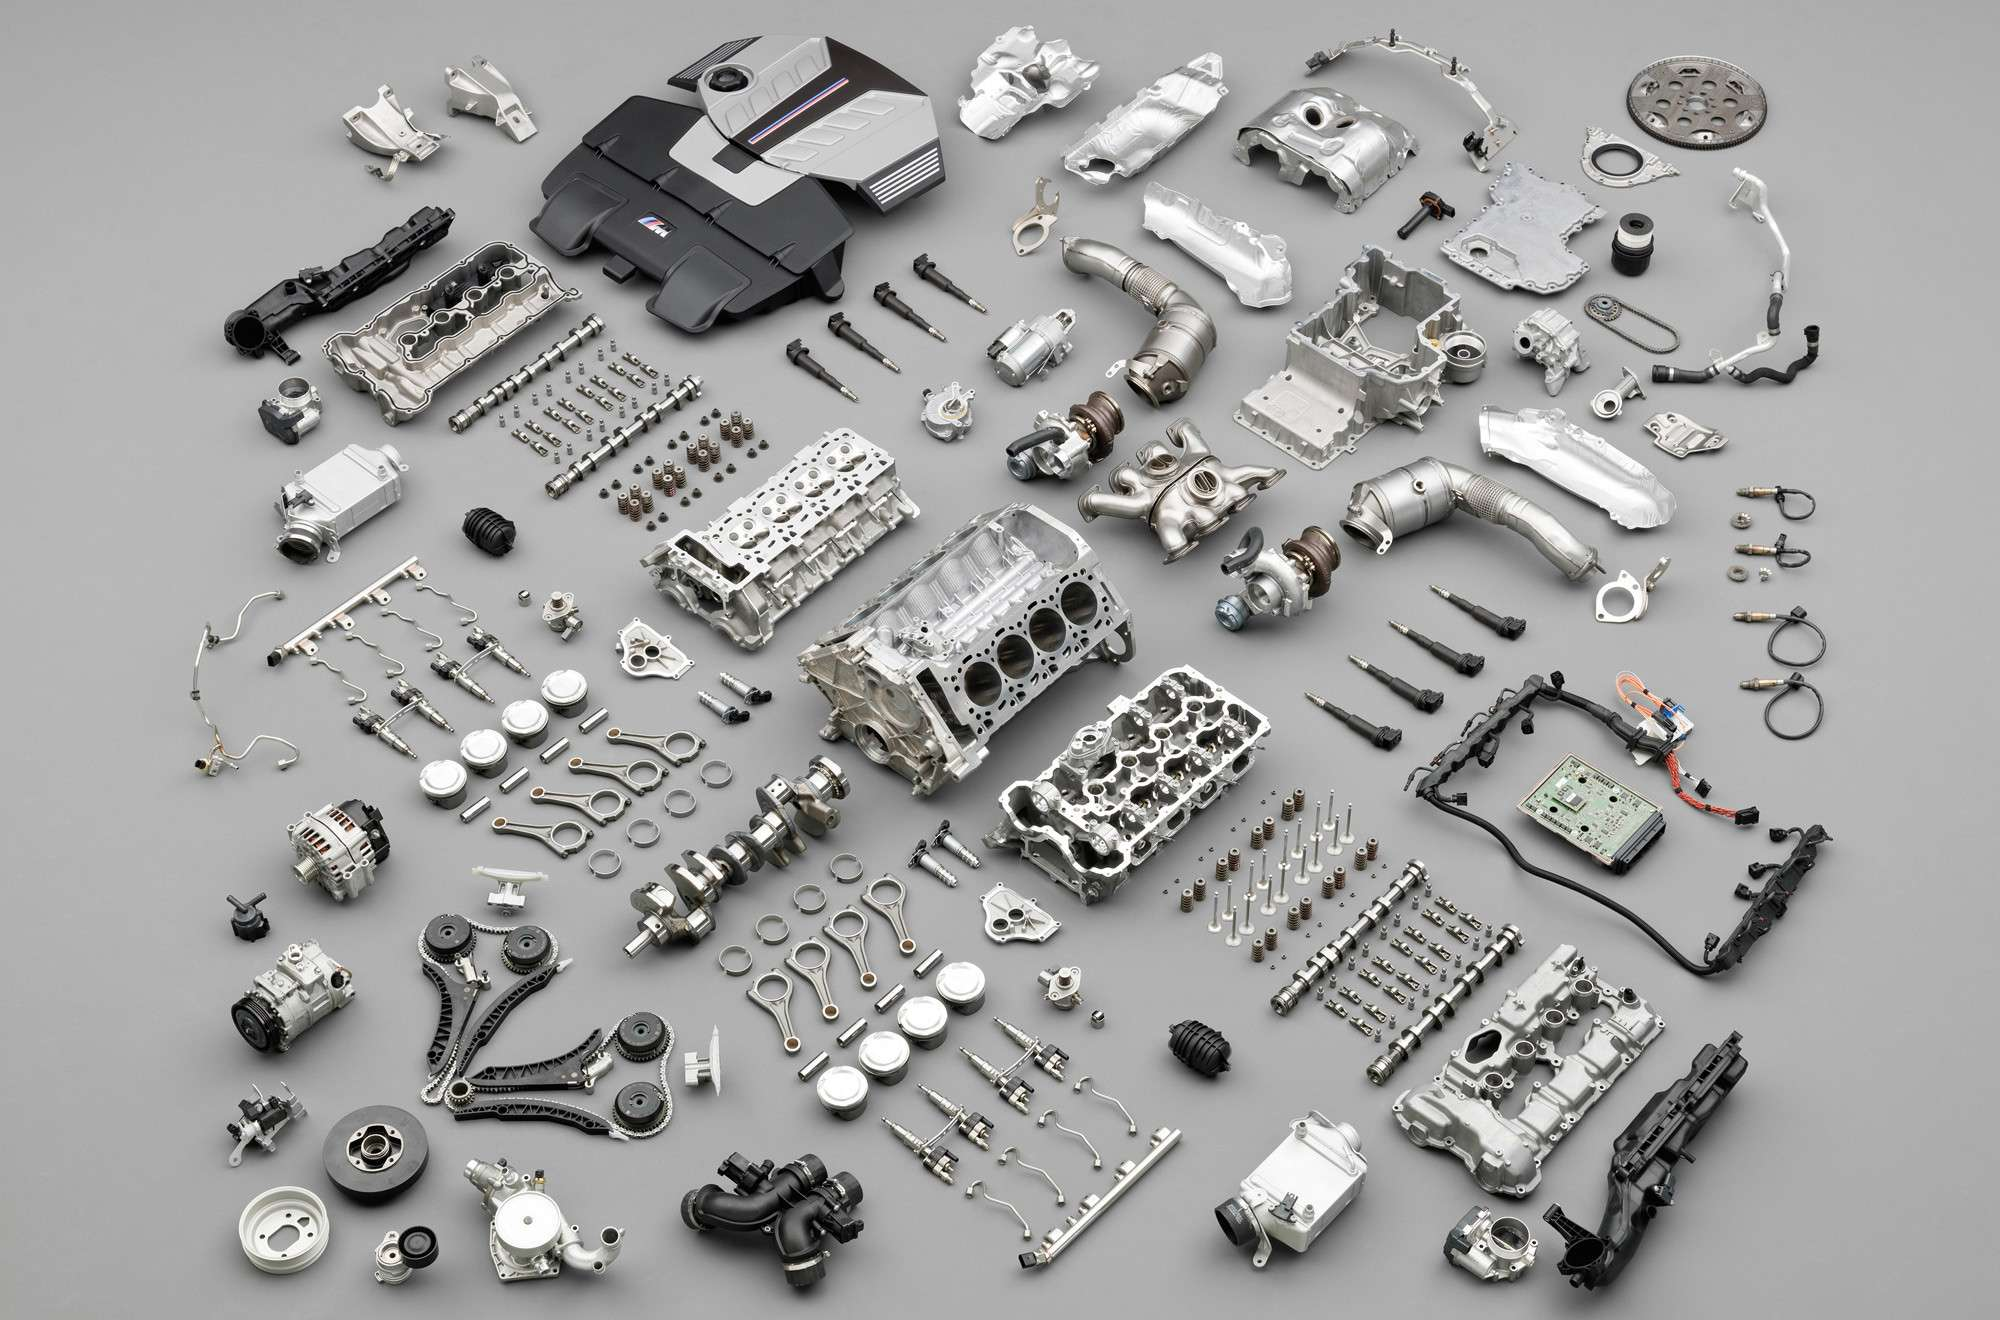 Basic Engine Parts Component Parts Of Internal